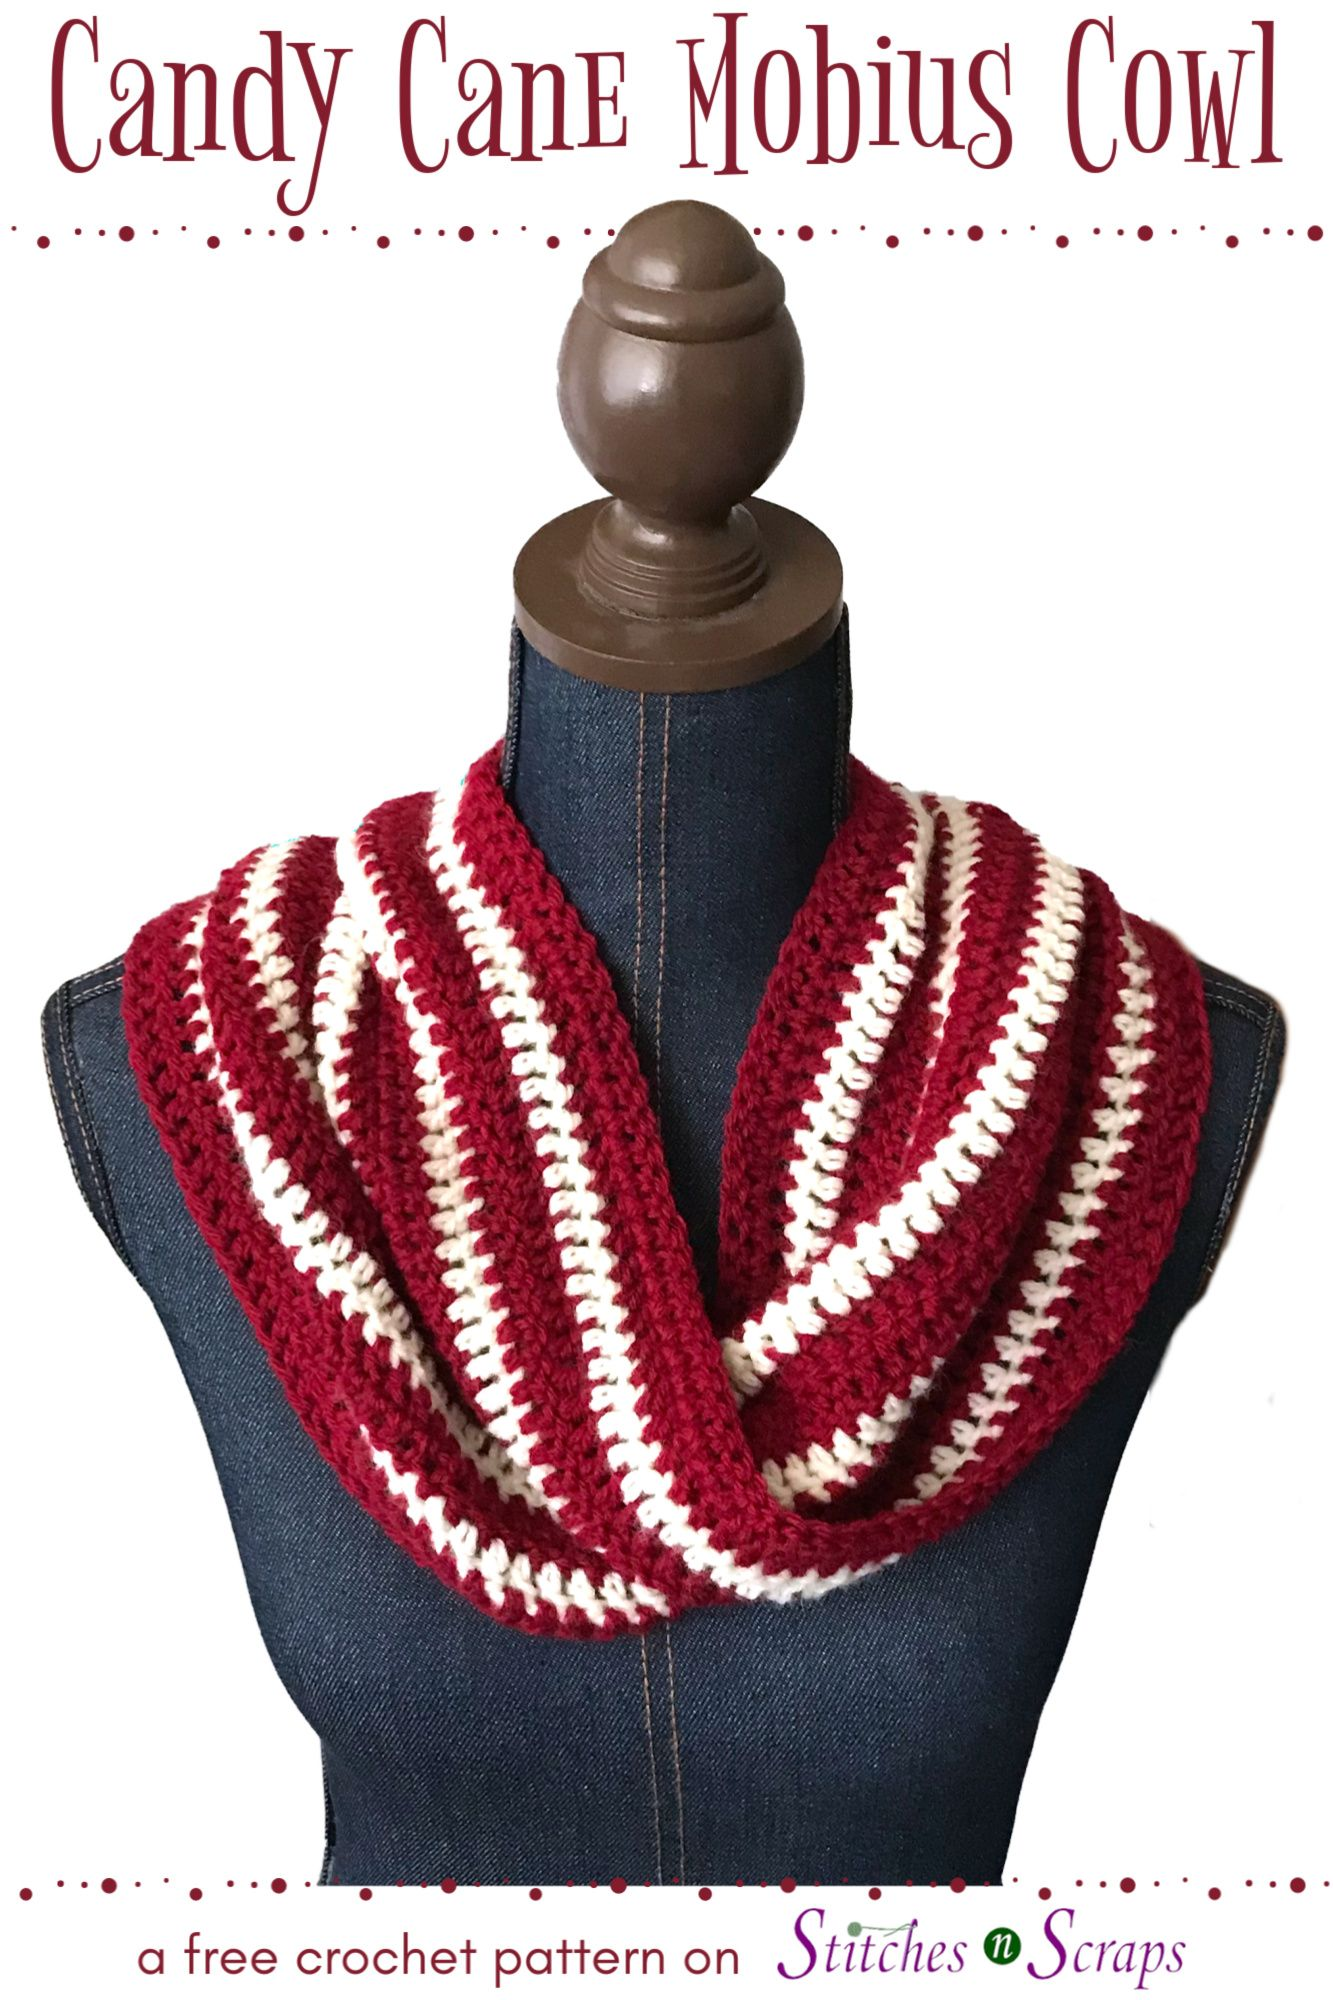 Crochet The Candy Cane Mobius Cowl